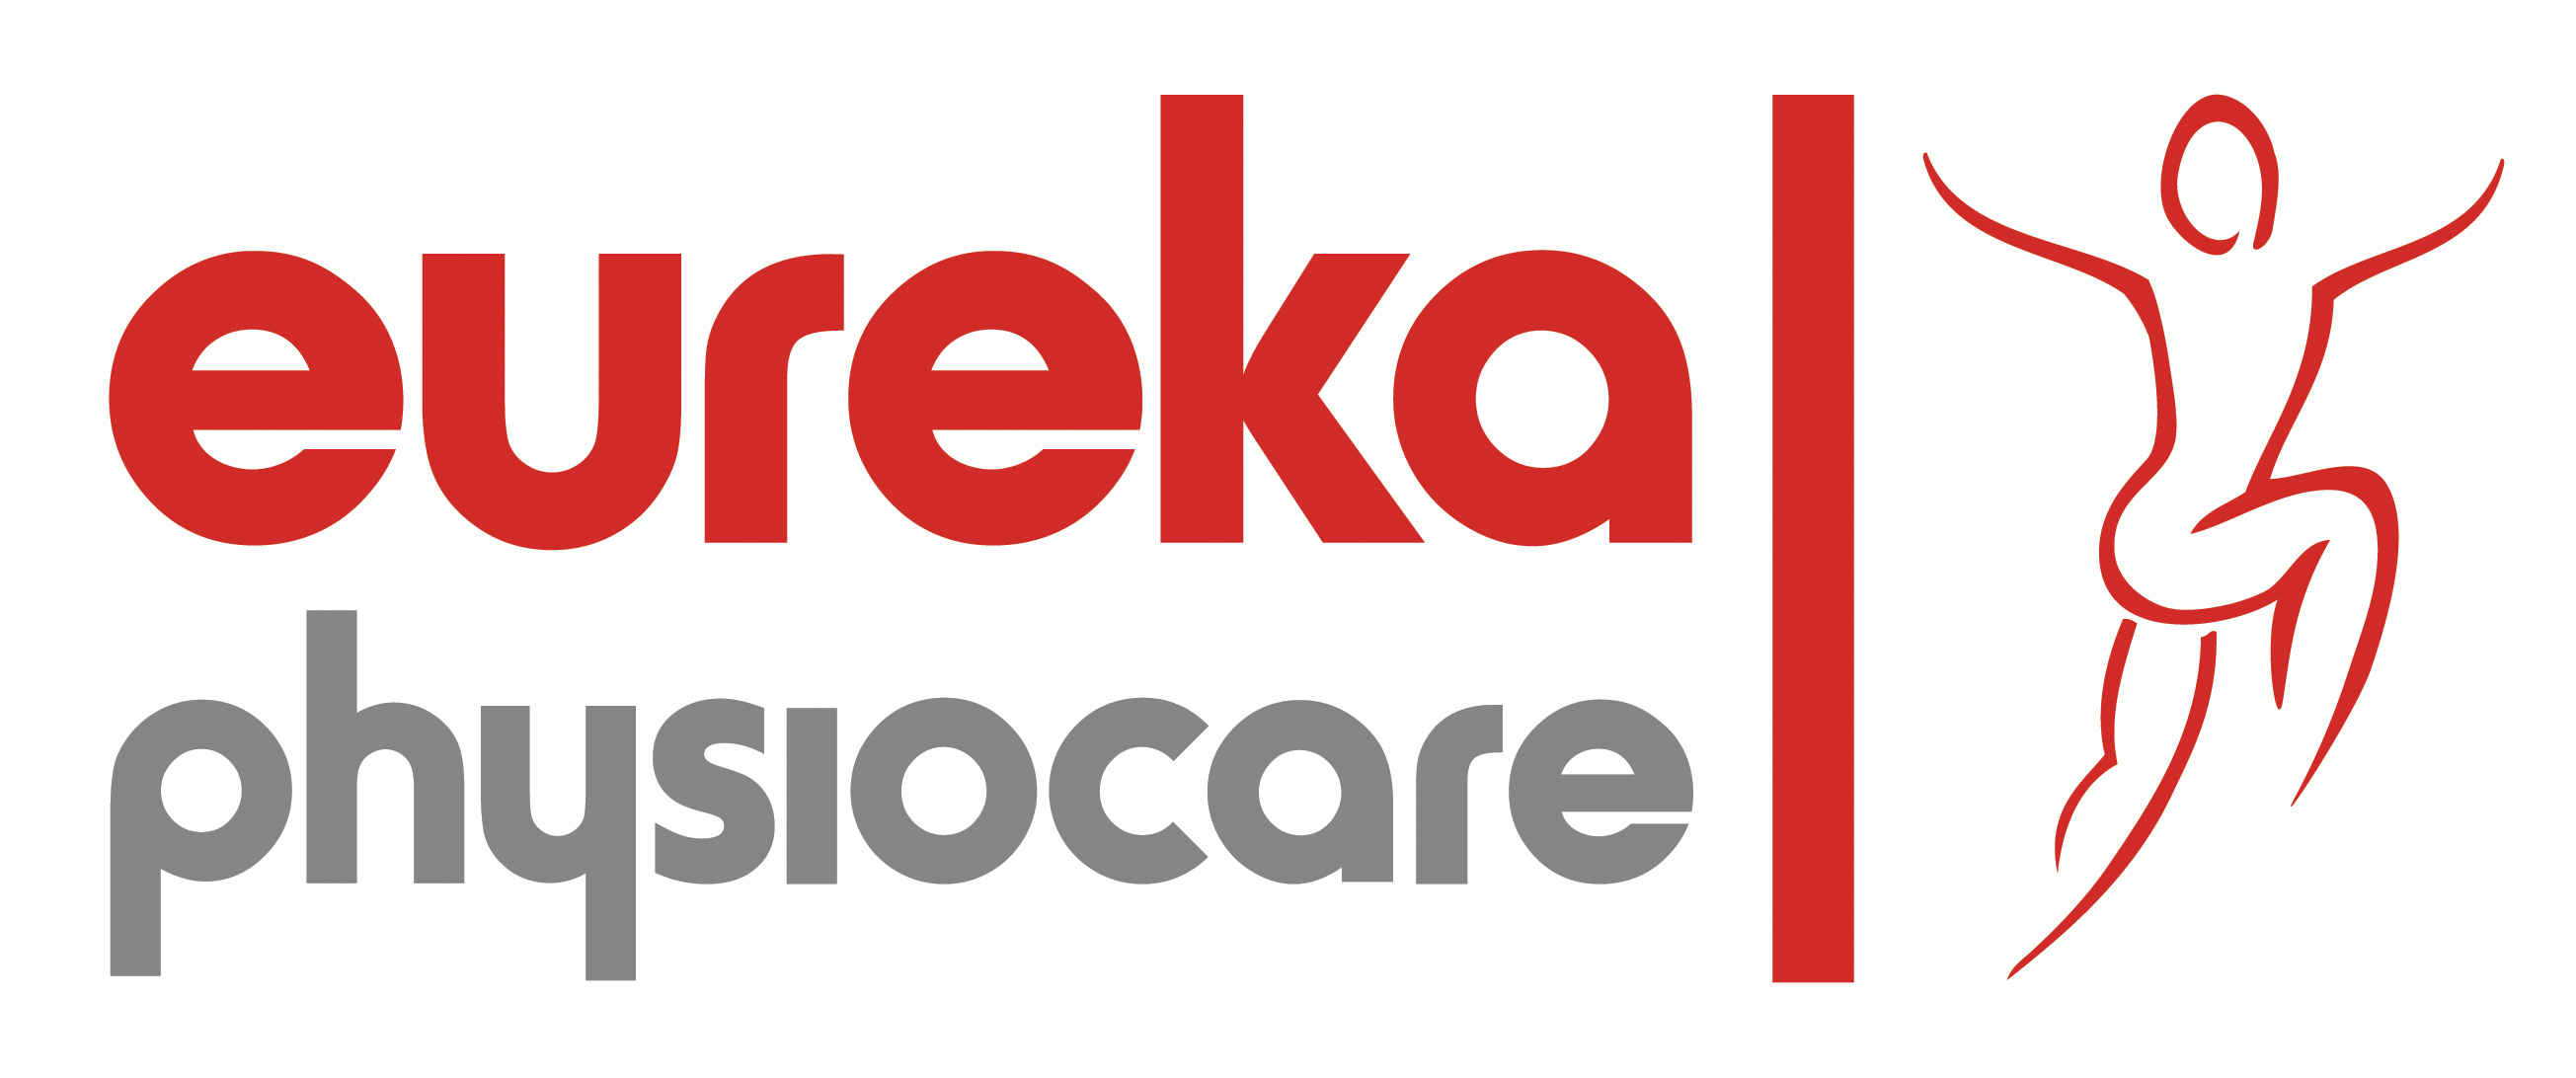 Read Eureka Physiocare Reviews